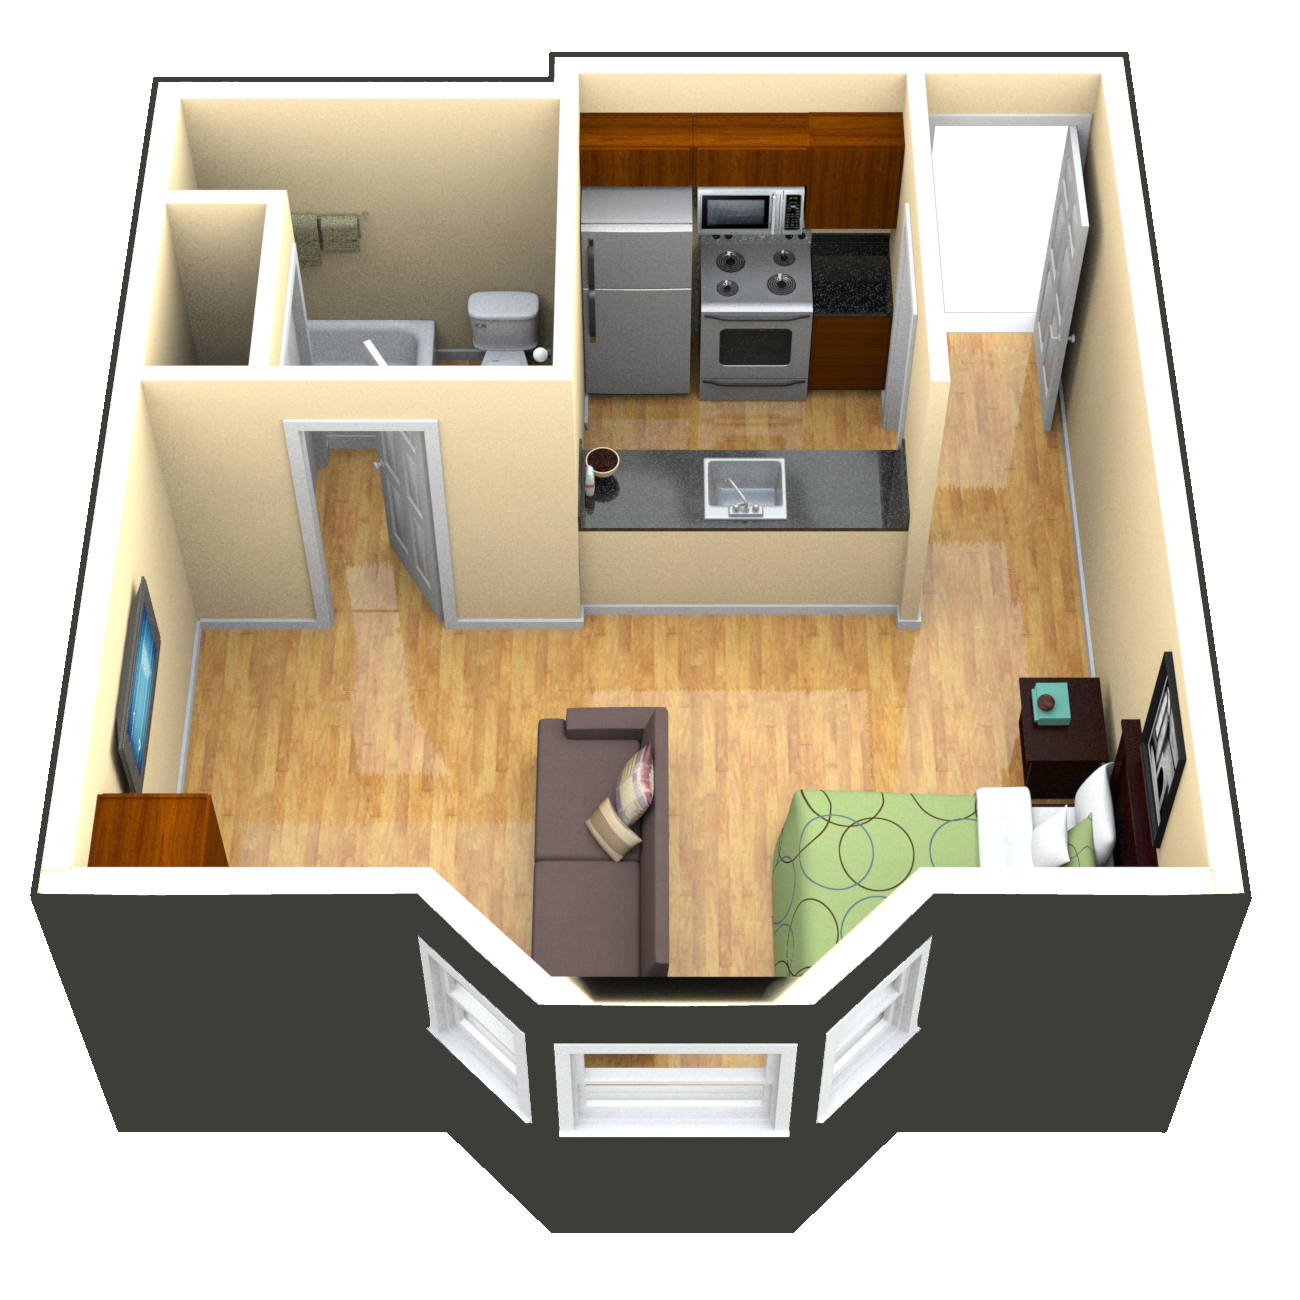 420 studio apartment floorplan google search studio for Garage studio apartment ideas